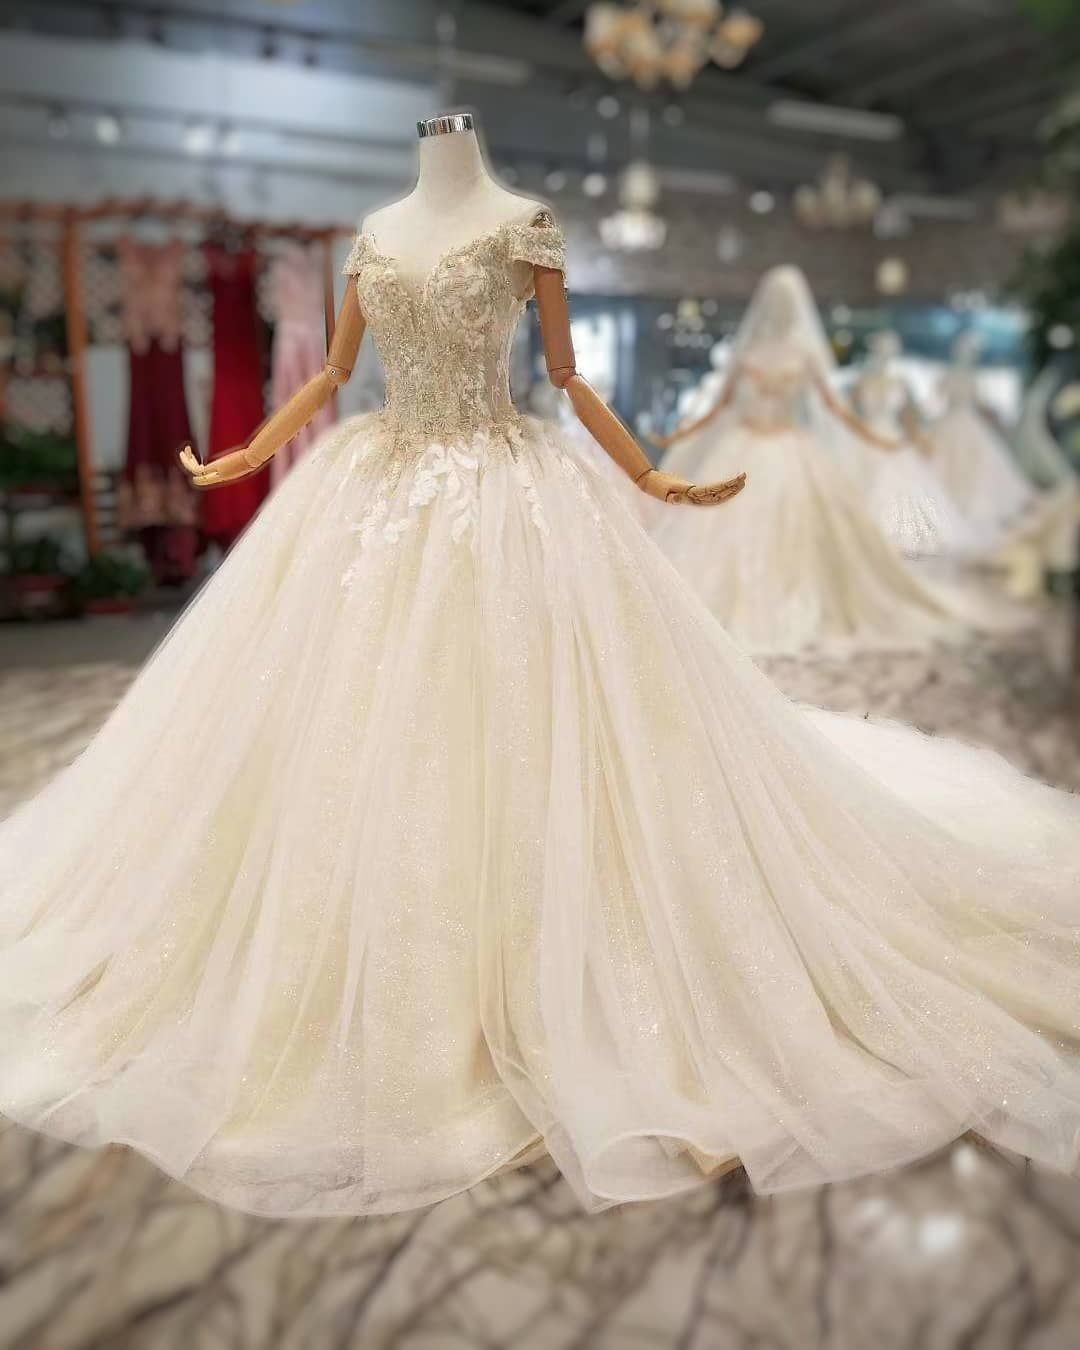 Cheap wedding dresses los angeles   DM us for more details wedding weddingdresses weddings